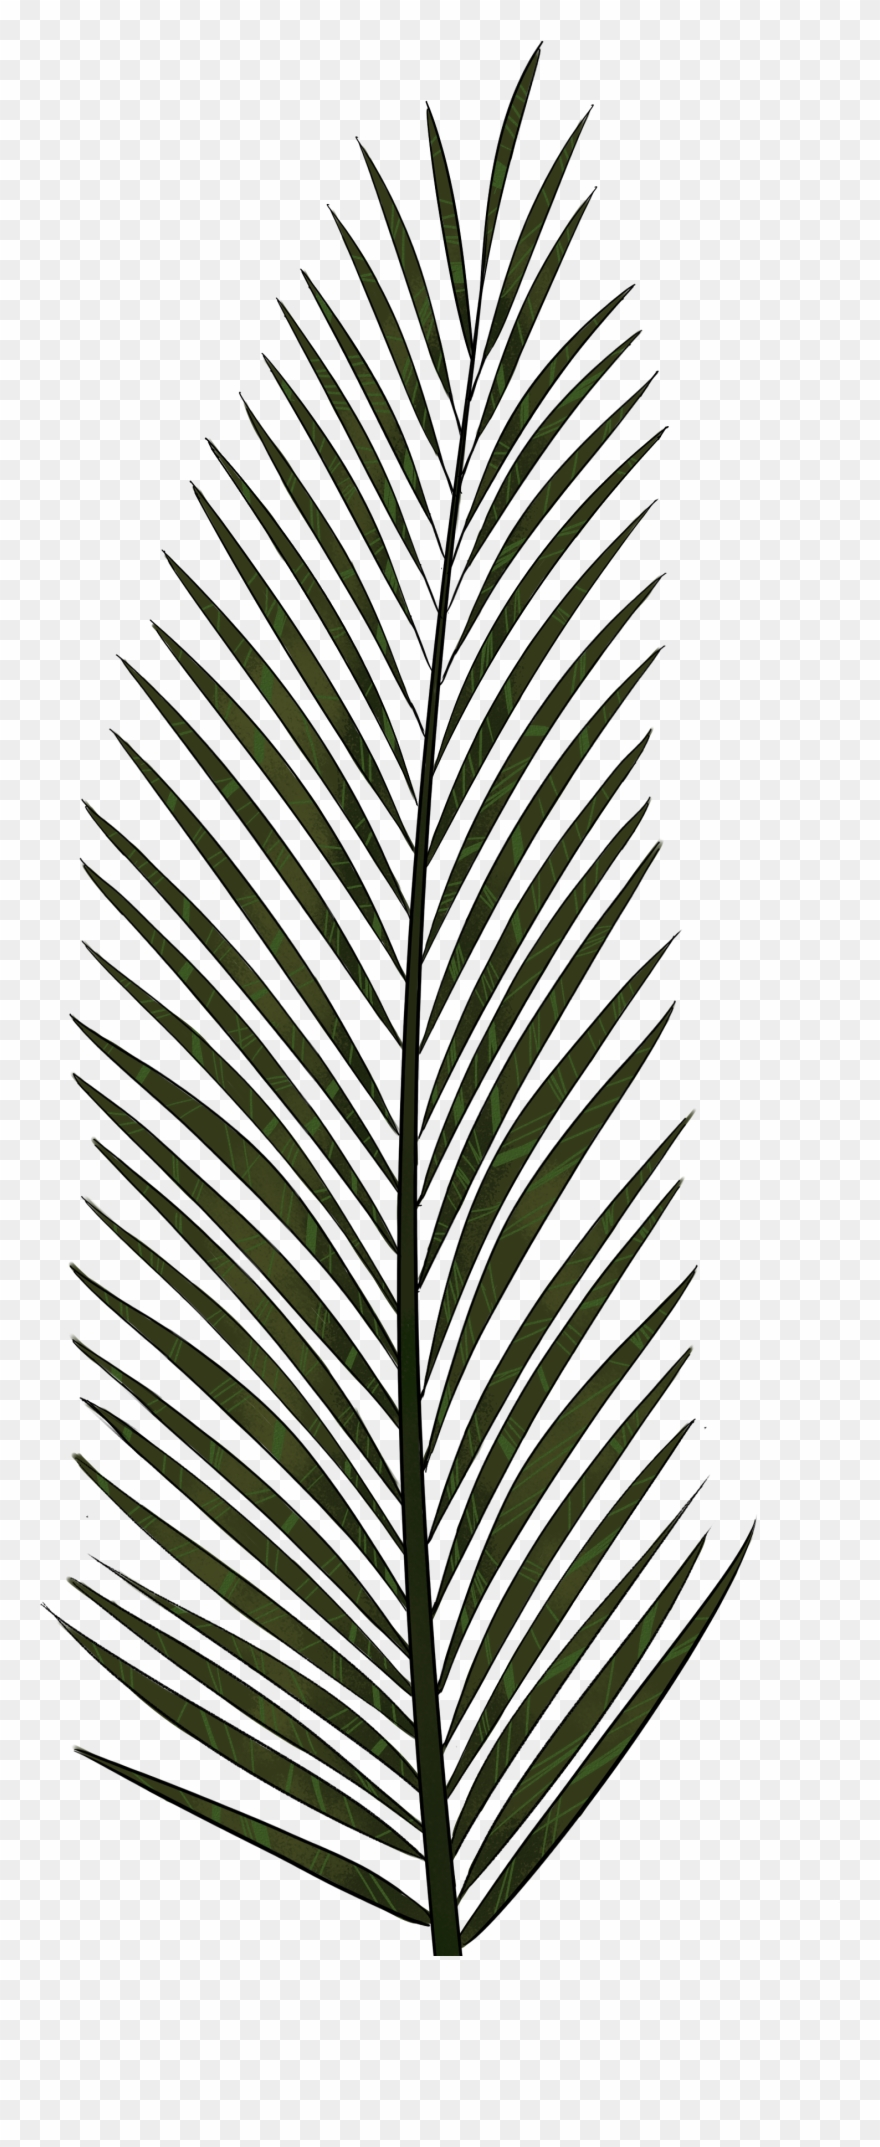 Palm Leaves Palm Tree Leaf Texture Clipart 514164 Pinclipart Available in vector, svg, png, dxf & pdf files. palm leaves palm tree leaf texture